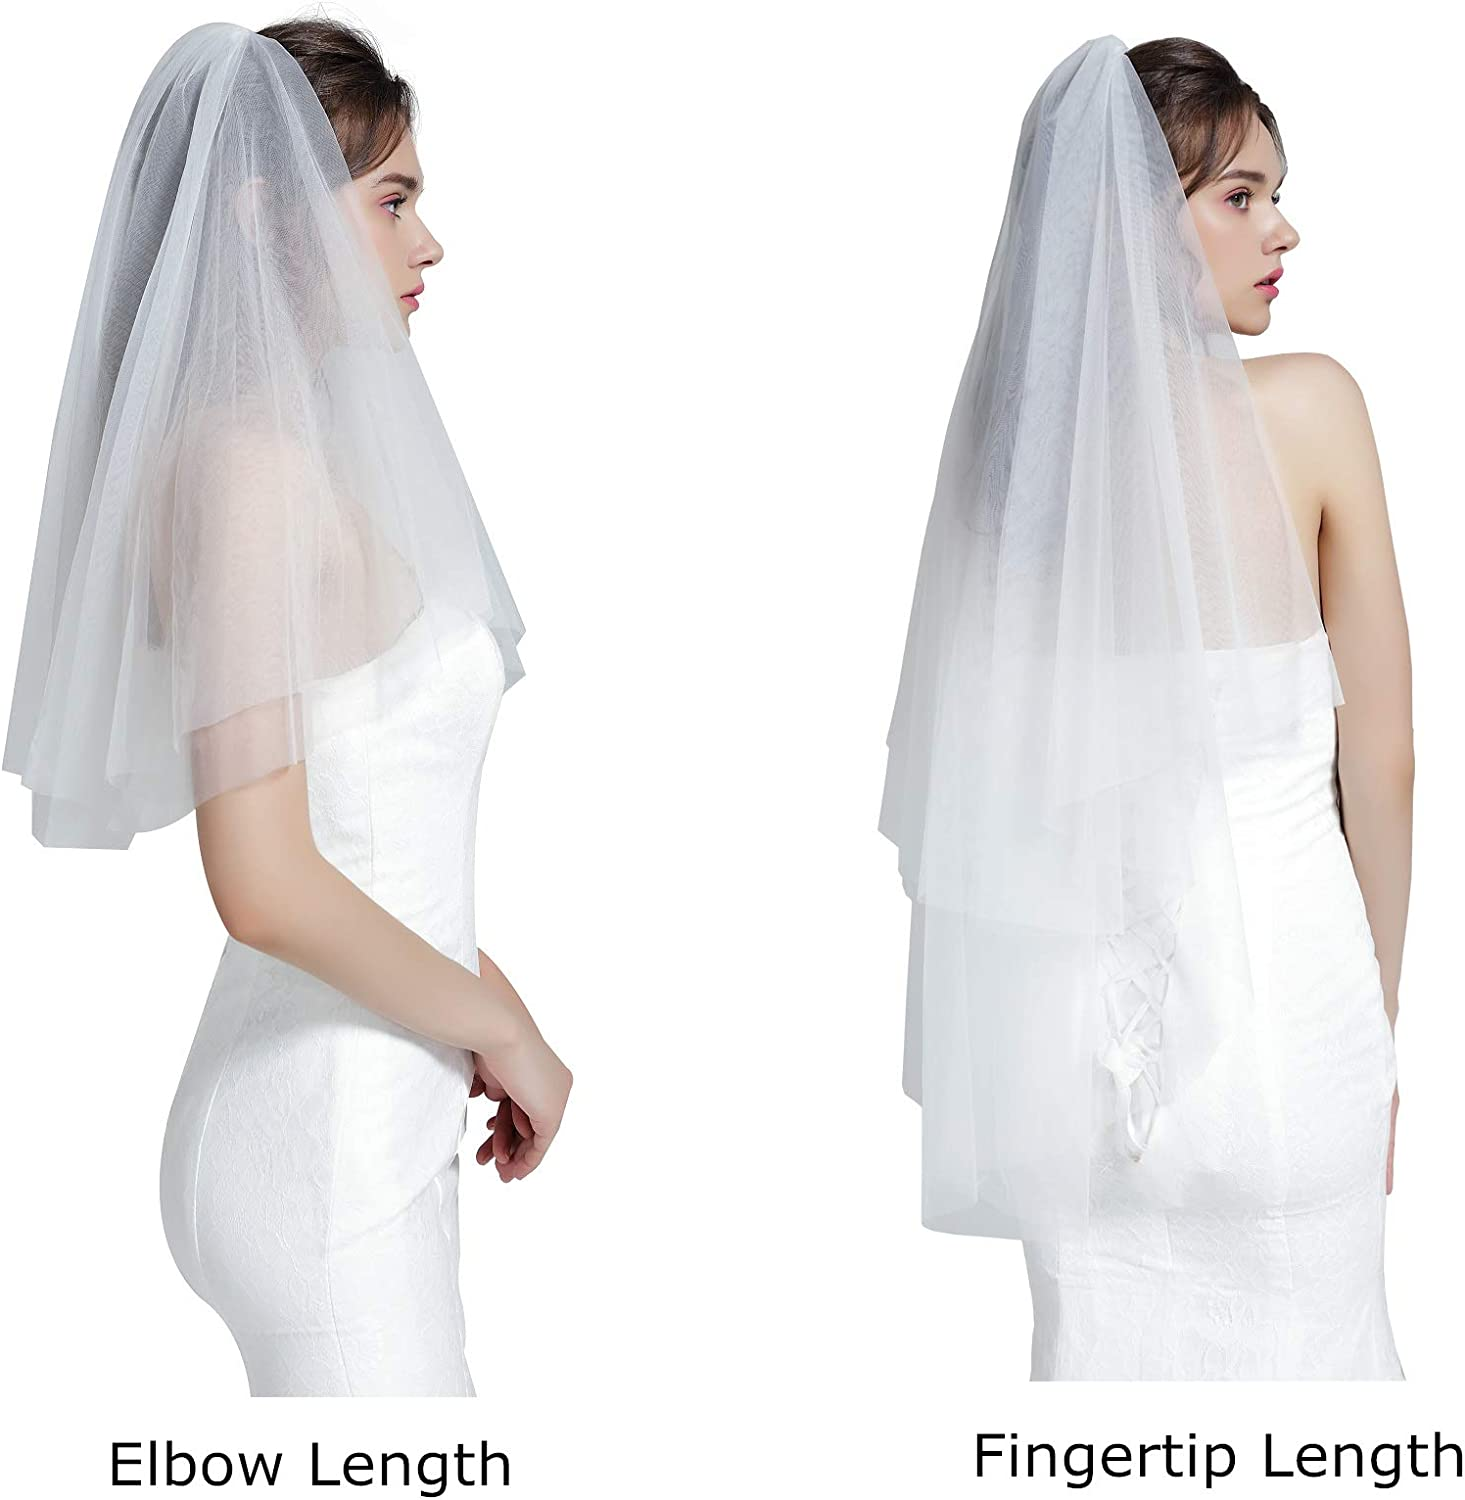 Comb 2T Short White Ivory Pearl Satin Edge Bridal Wedding Elbow Length Veil